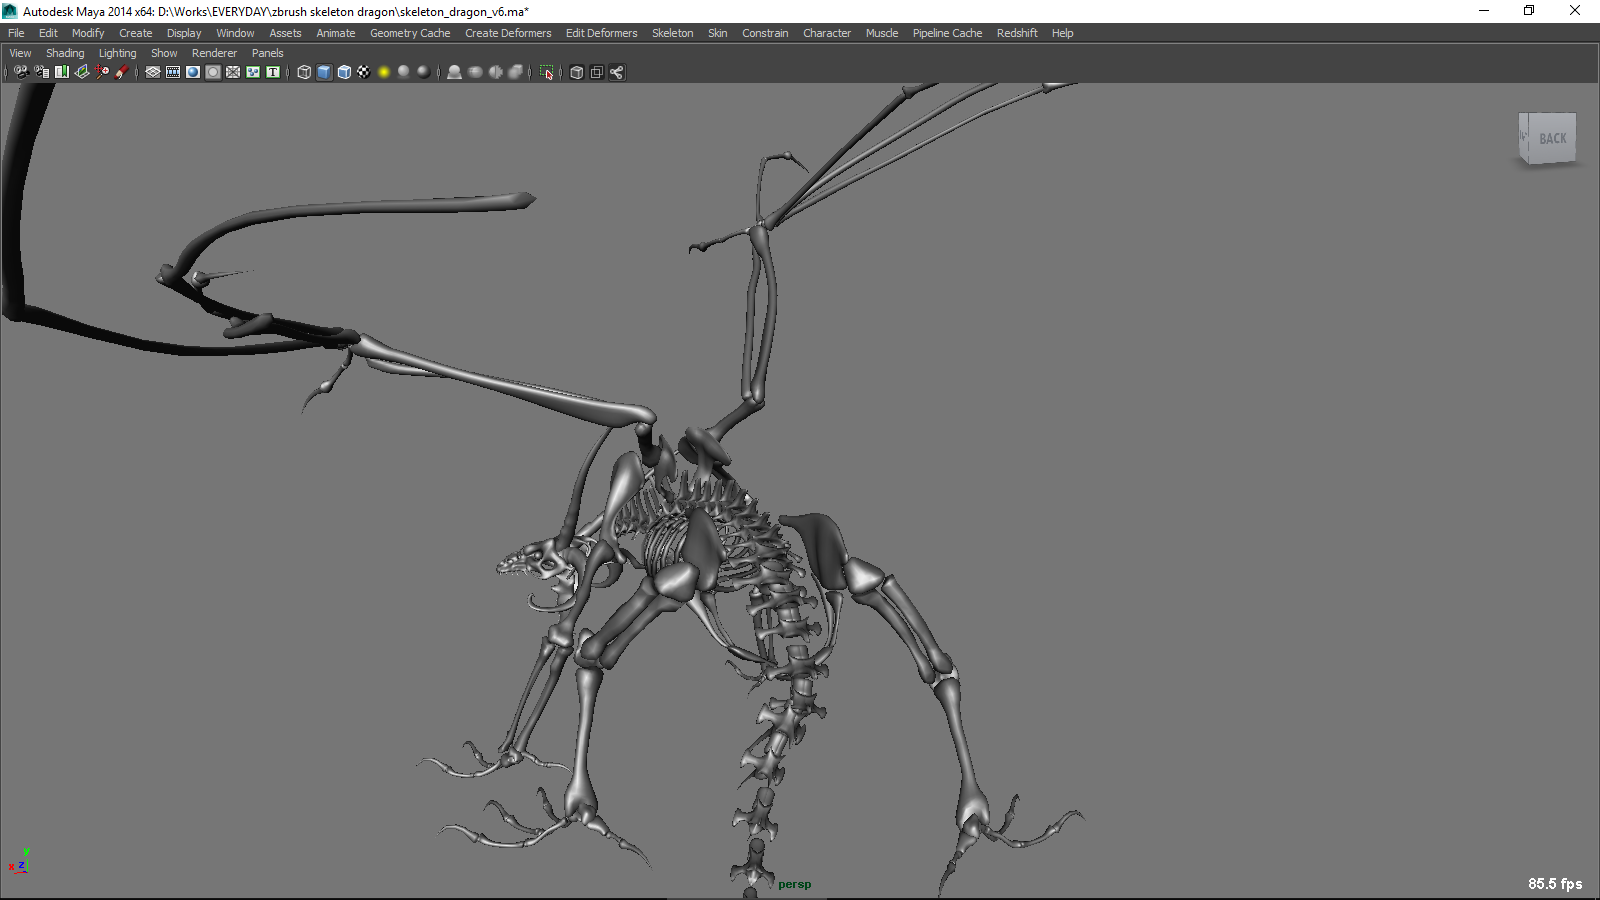 Zbrush Dragon Rig for Maya - Free Character Rigs Downloads for Maya